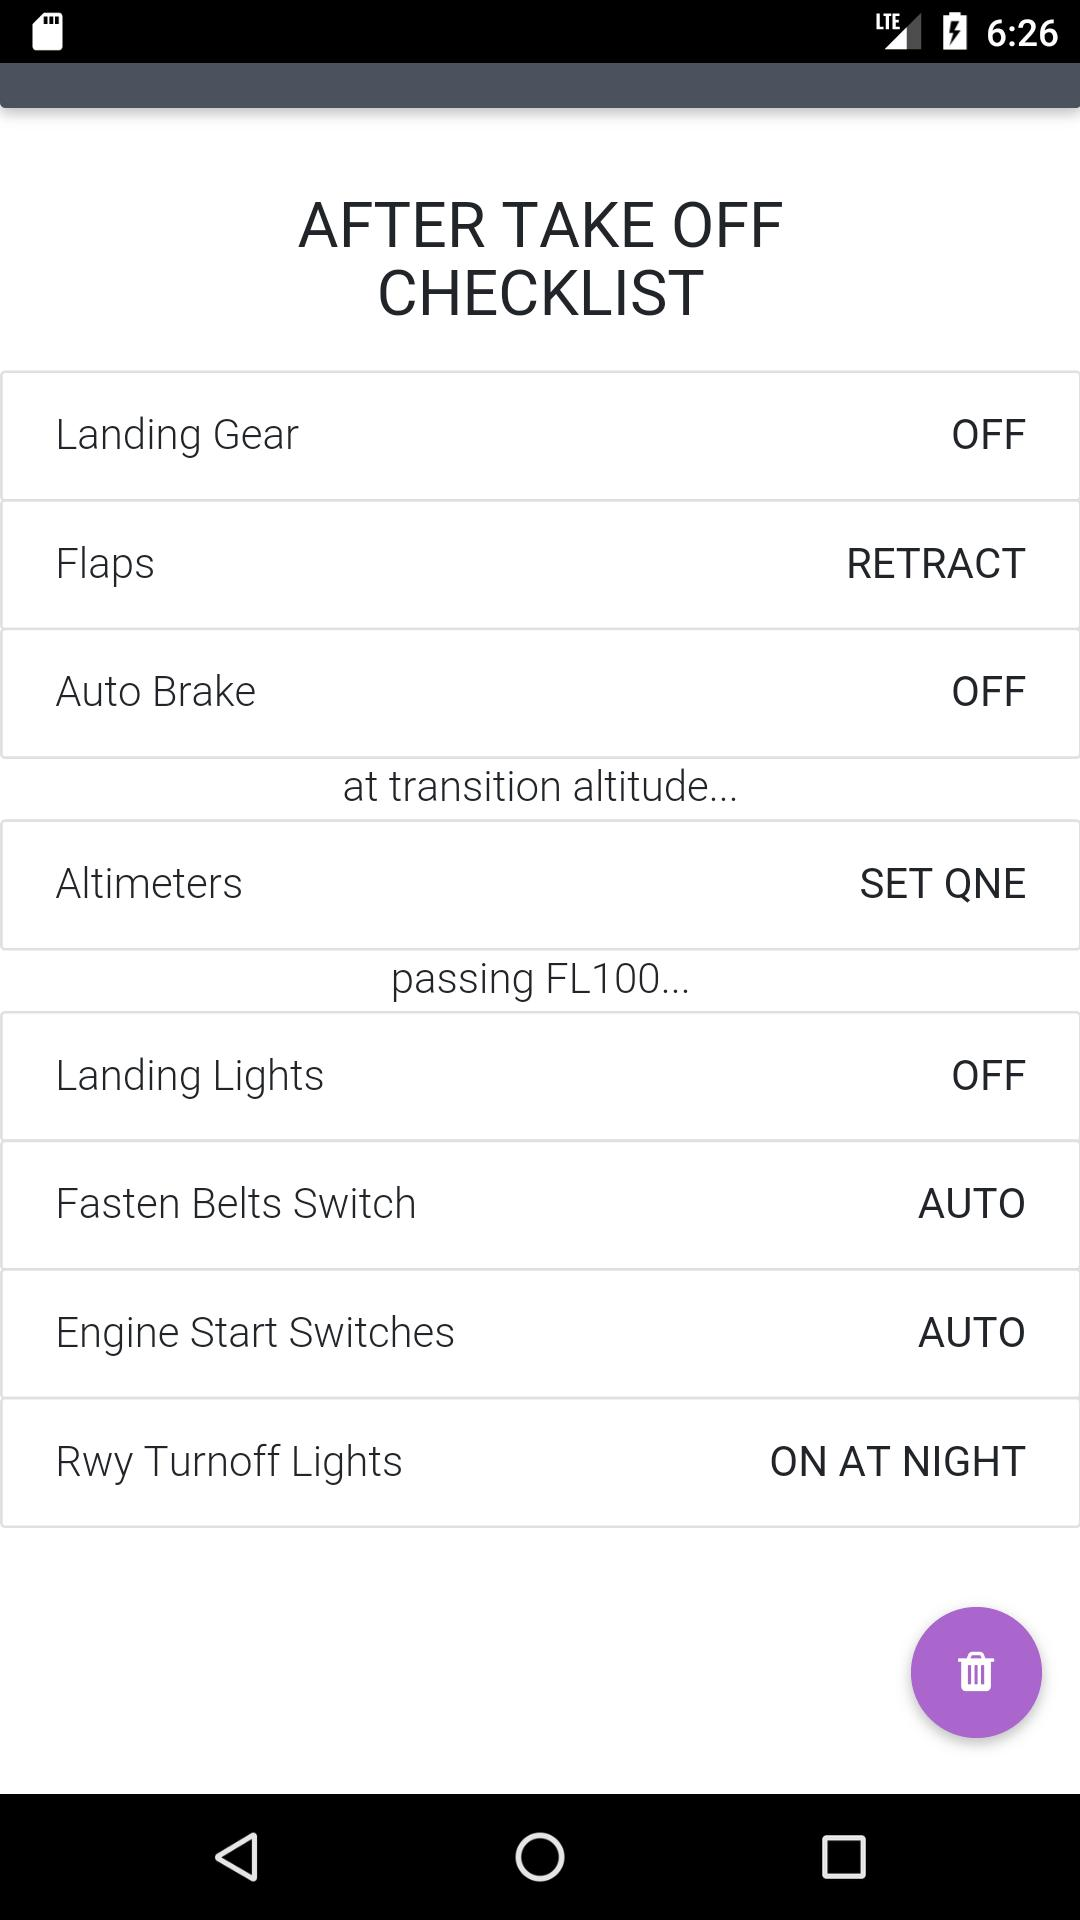 Boeing 737 NG Checklists and Calculator for Android - APK